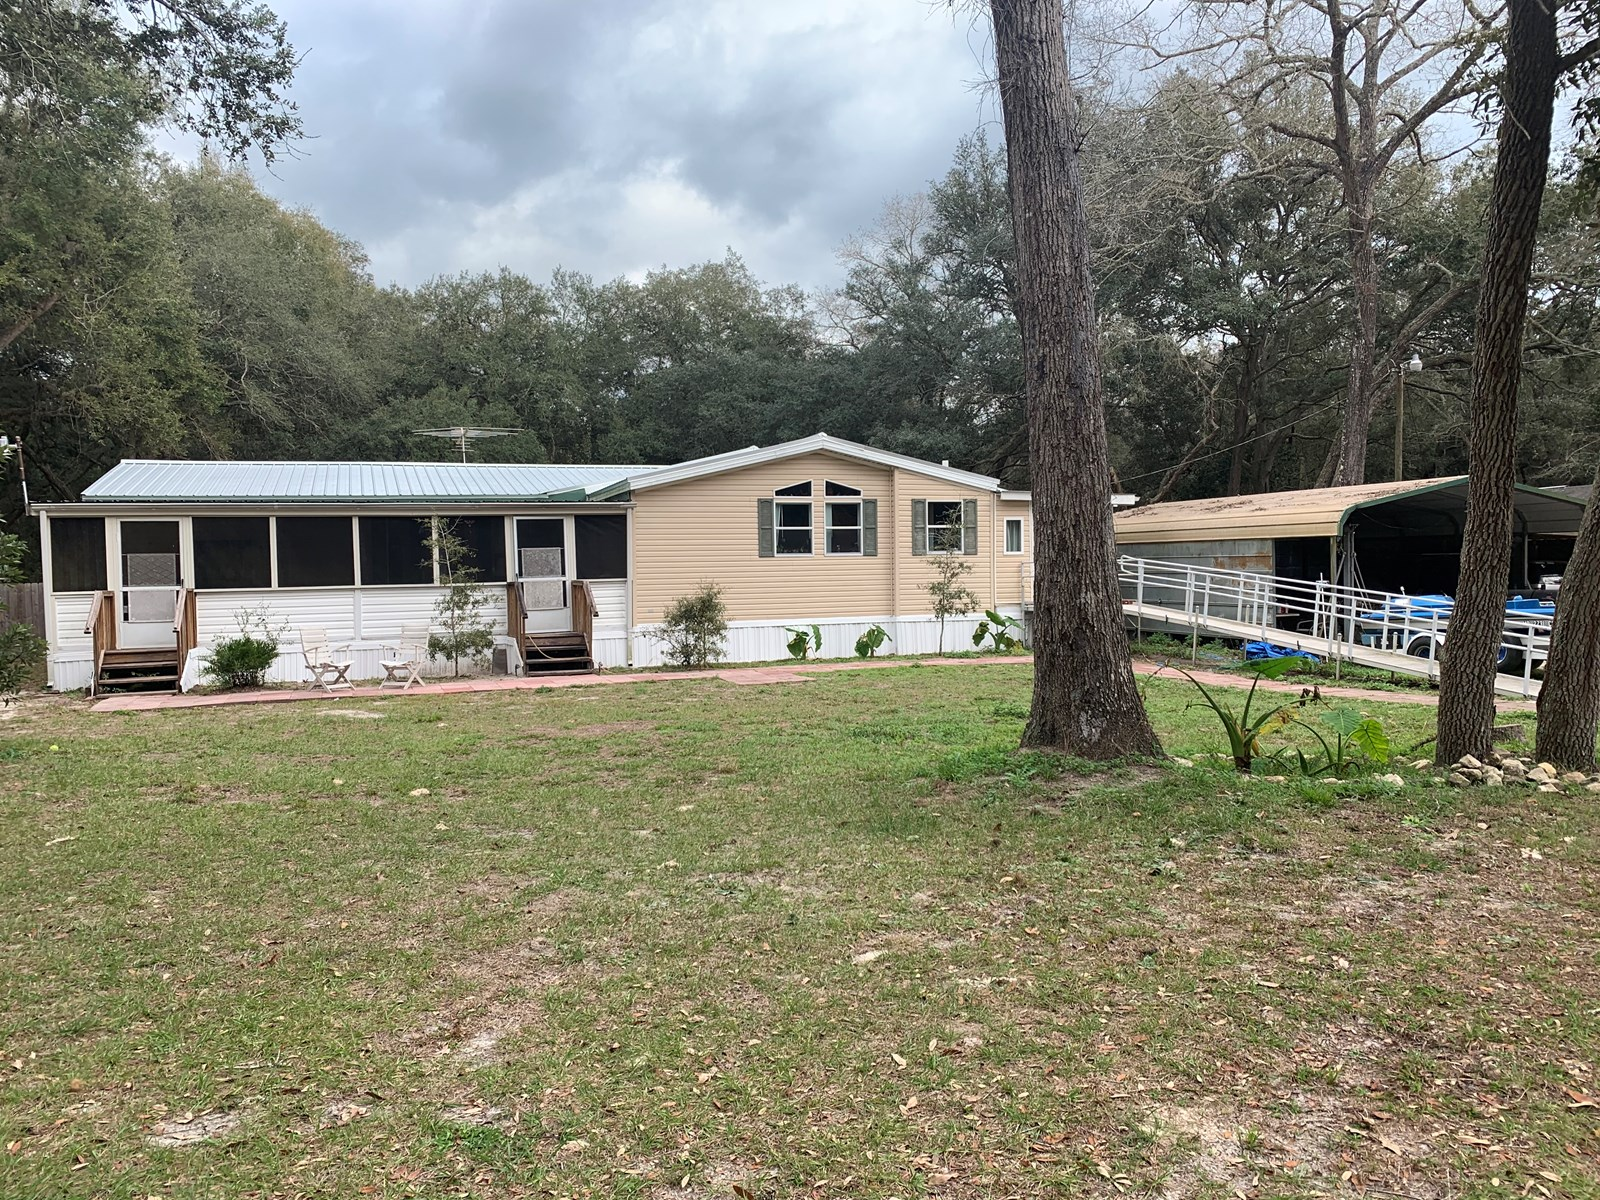 3/2 Triple wide Mobile Home in Fanning Springs, Florida